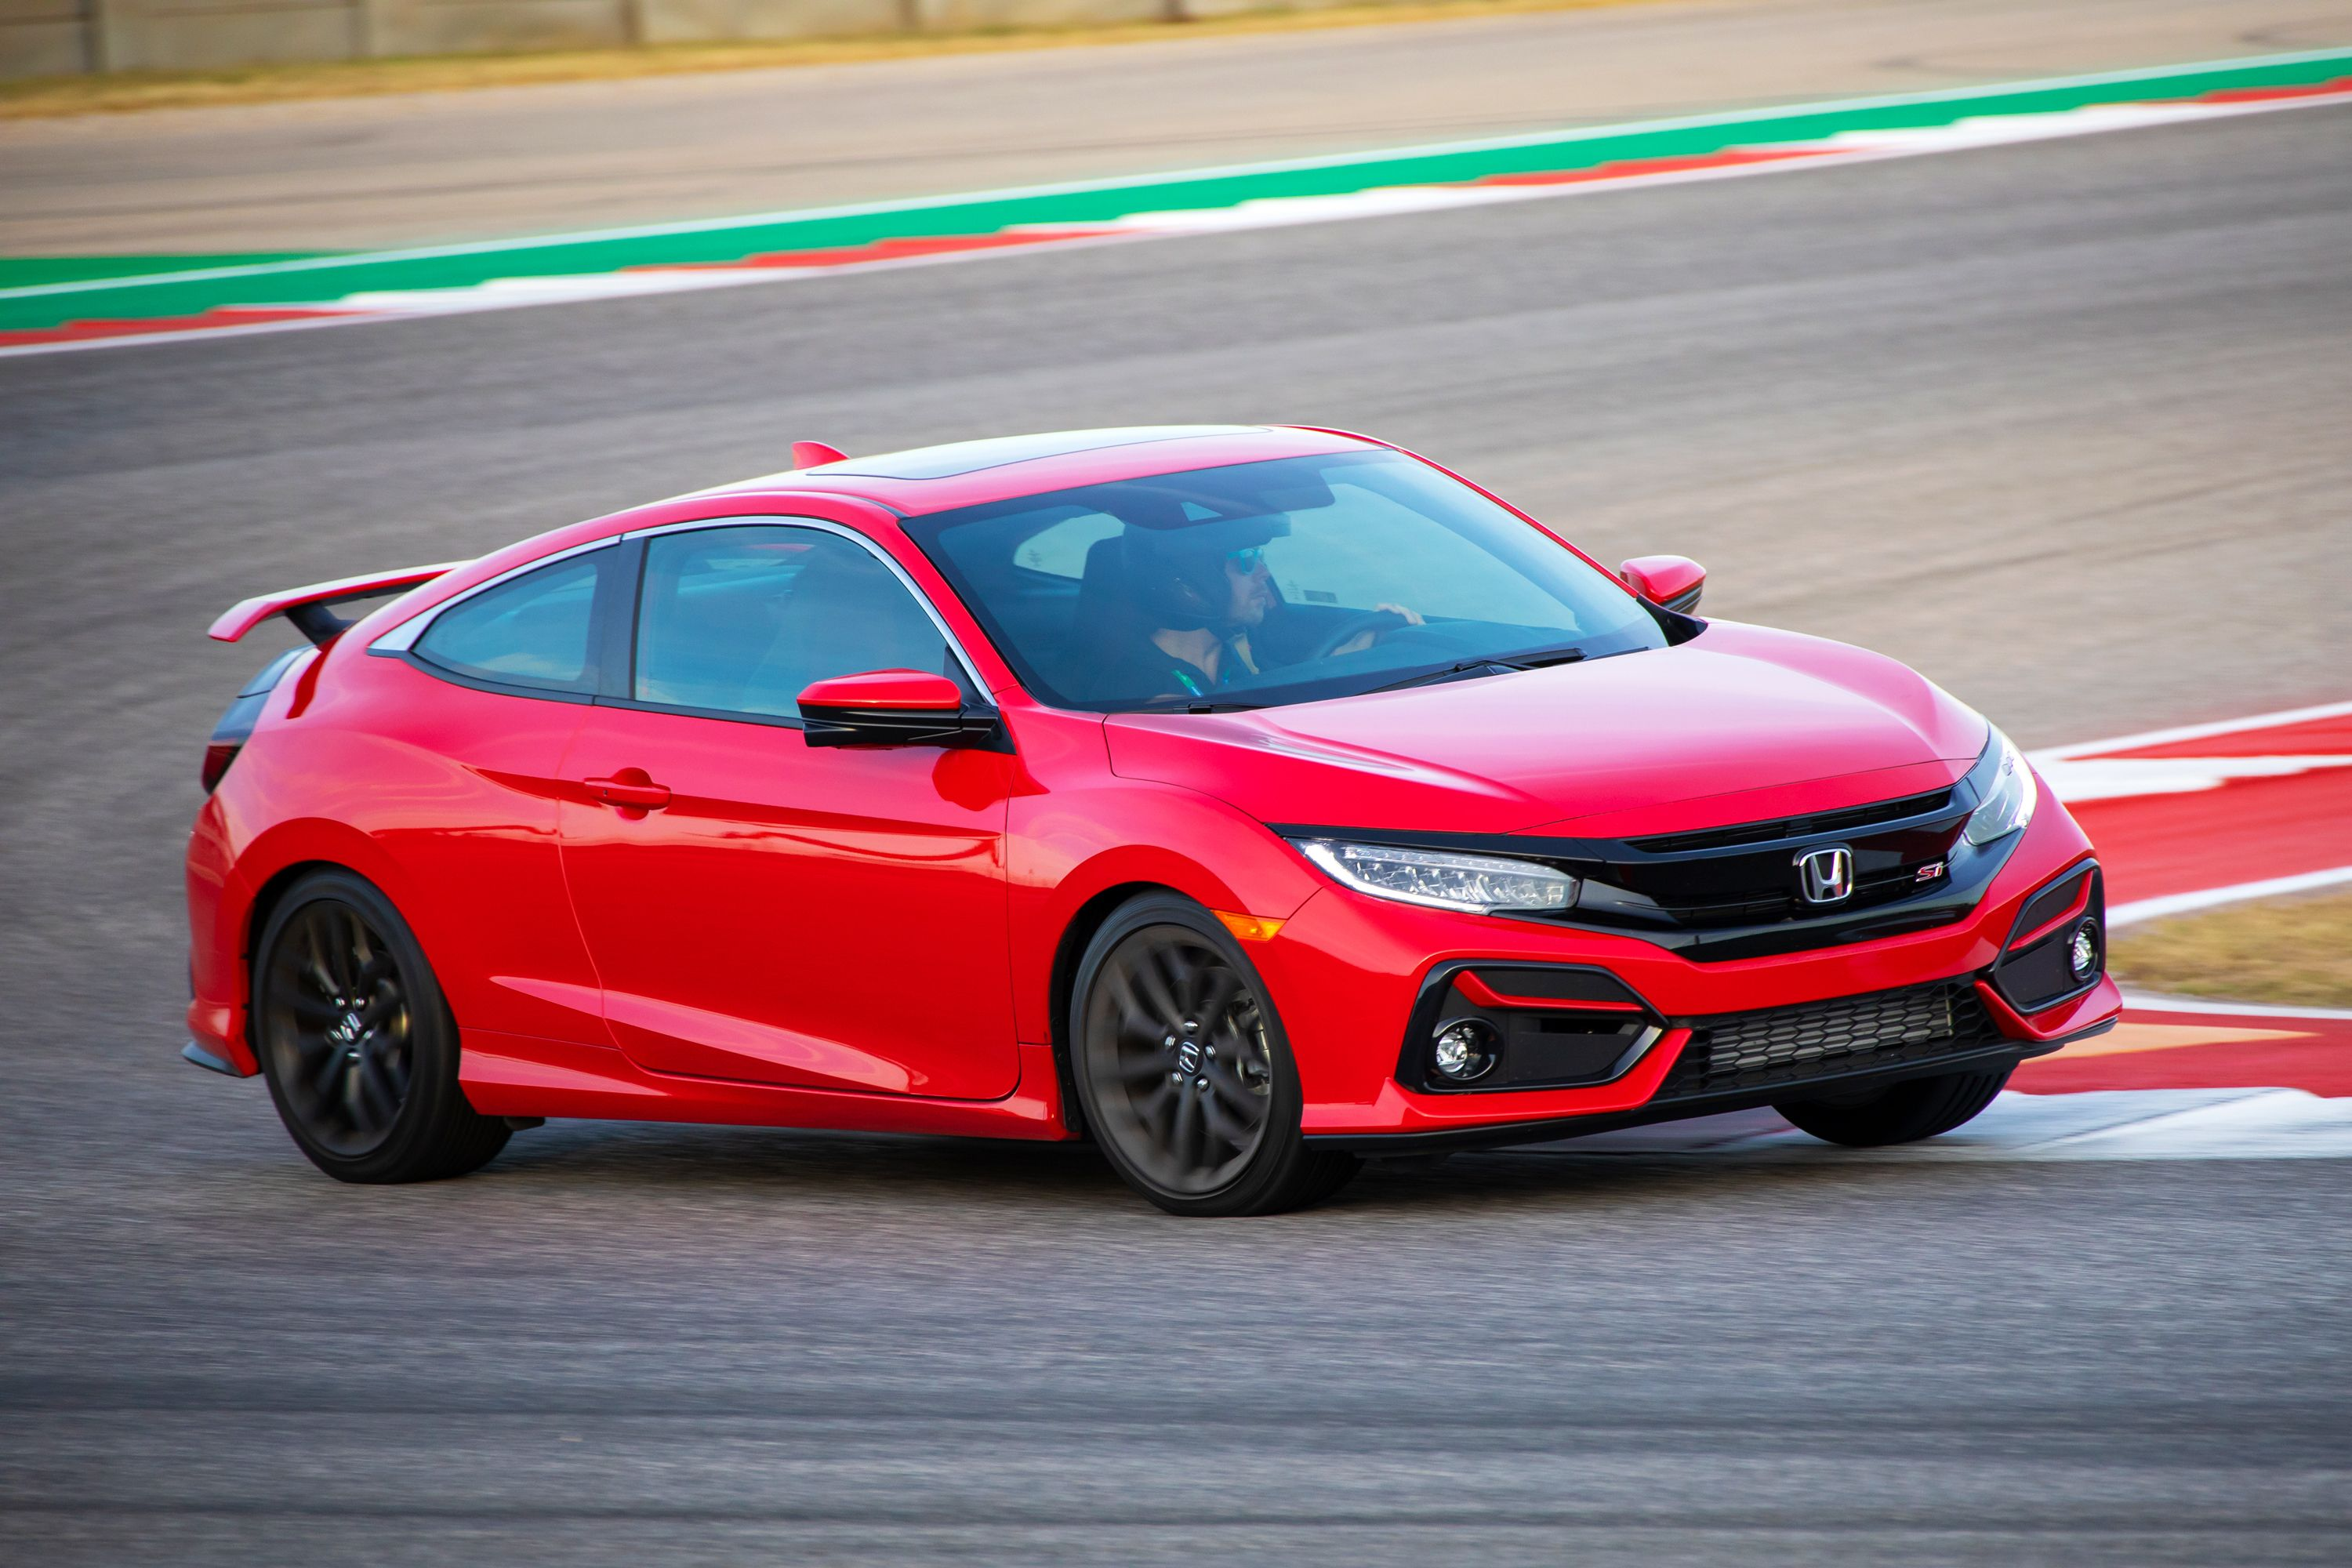 2020 Honda Civic Si Small Changes To A Great Car